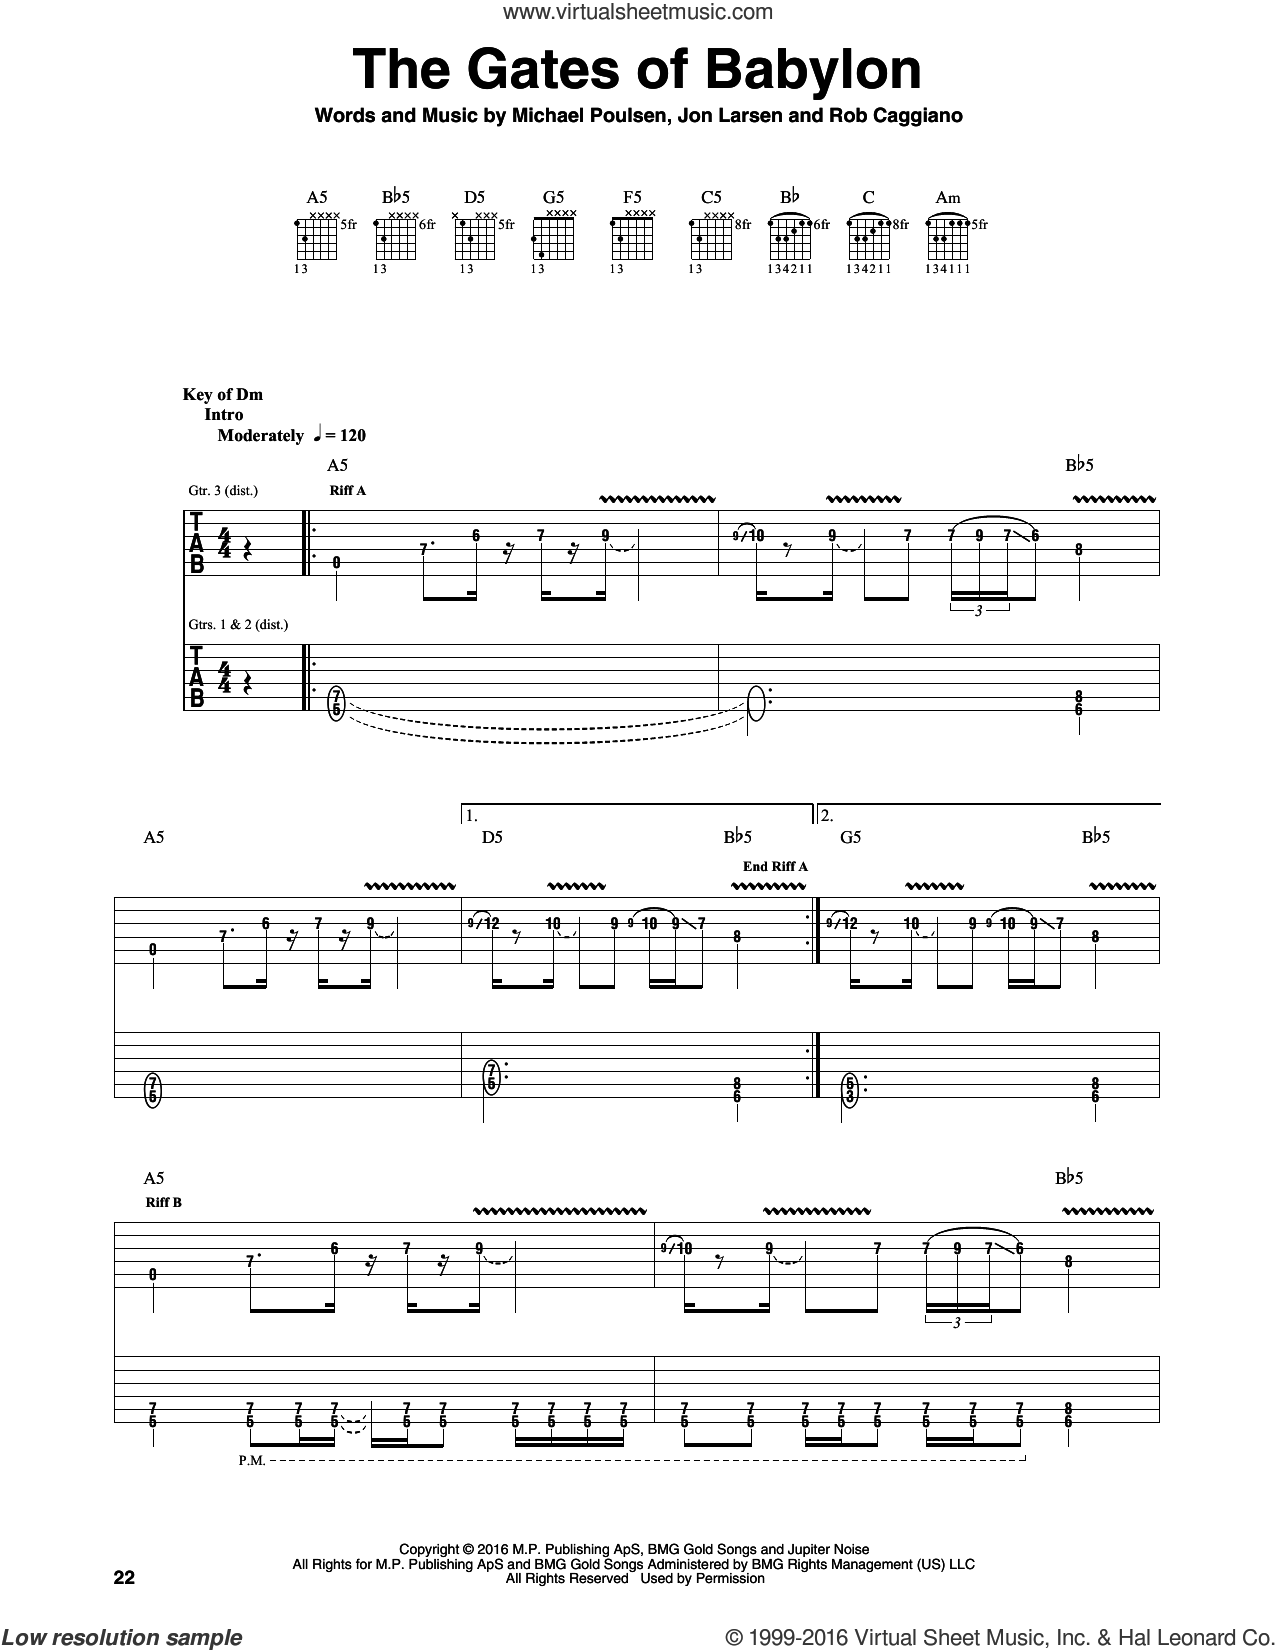 The Gates Of Babylon sheet music for guitar (rhythm tablature) by Volbeat, Jon Larsen, Michael Poulsen and Rob Caggiano, intermediate. Score Image Preview.